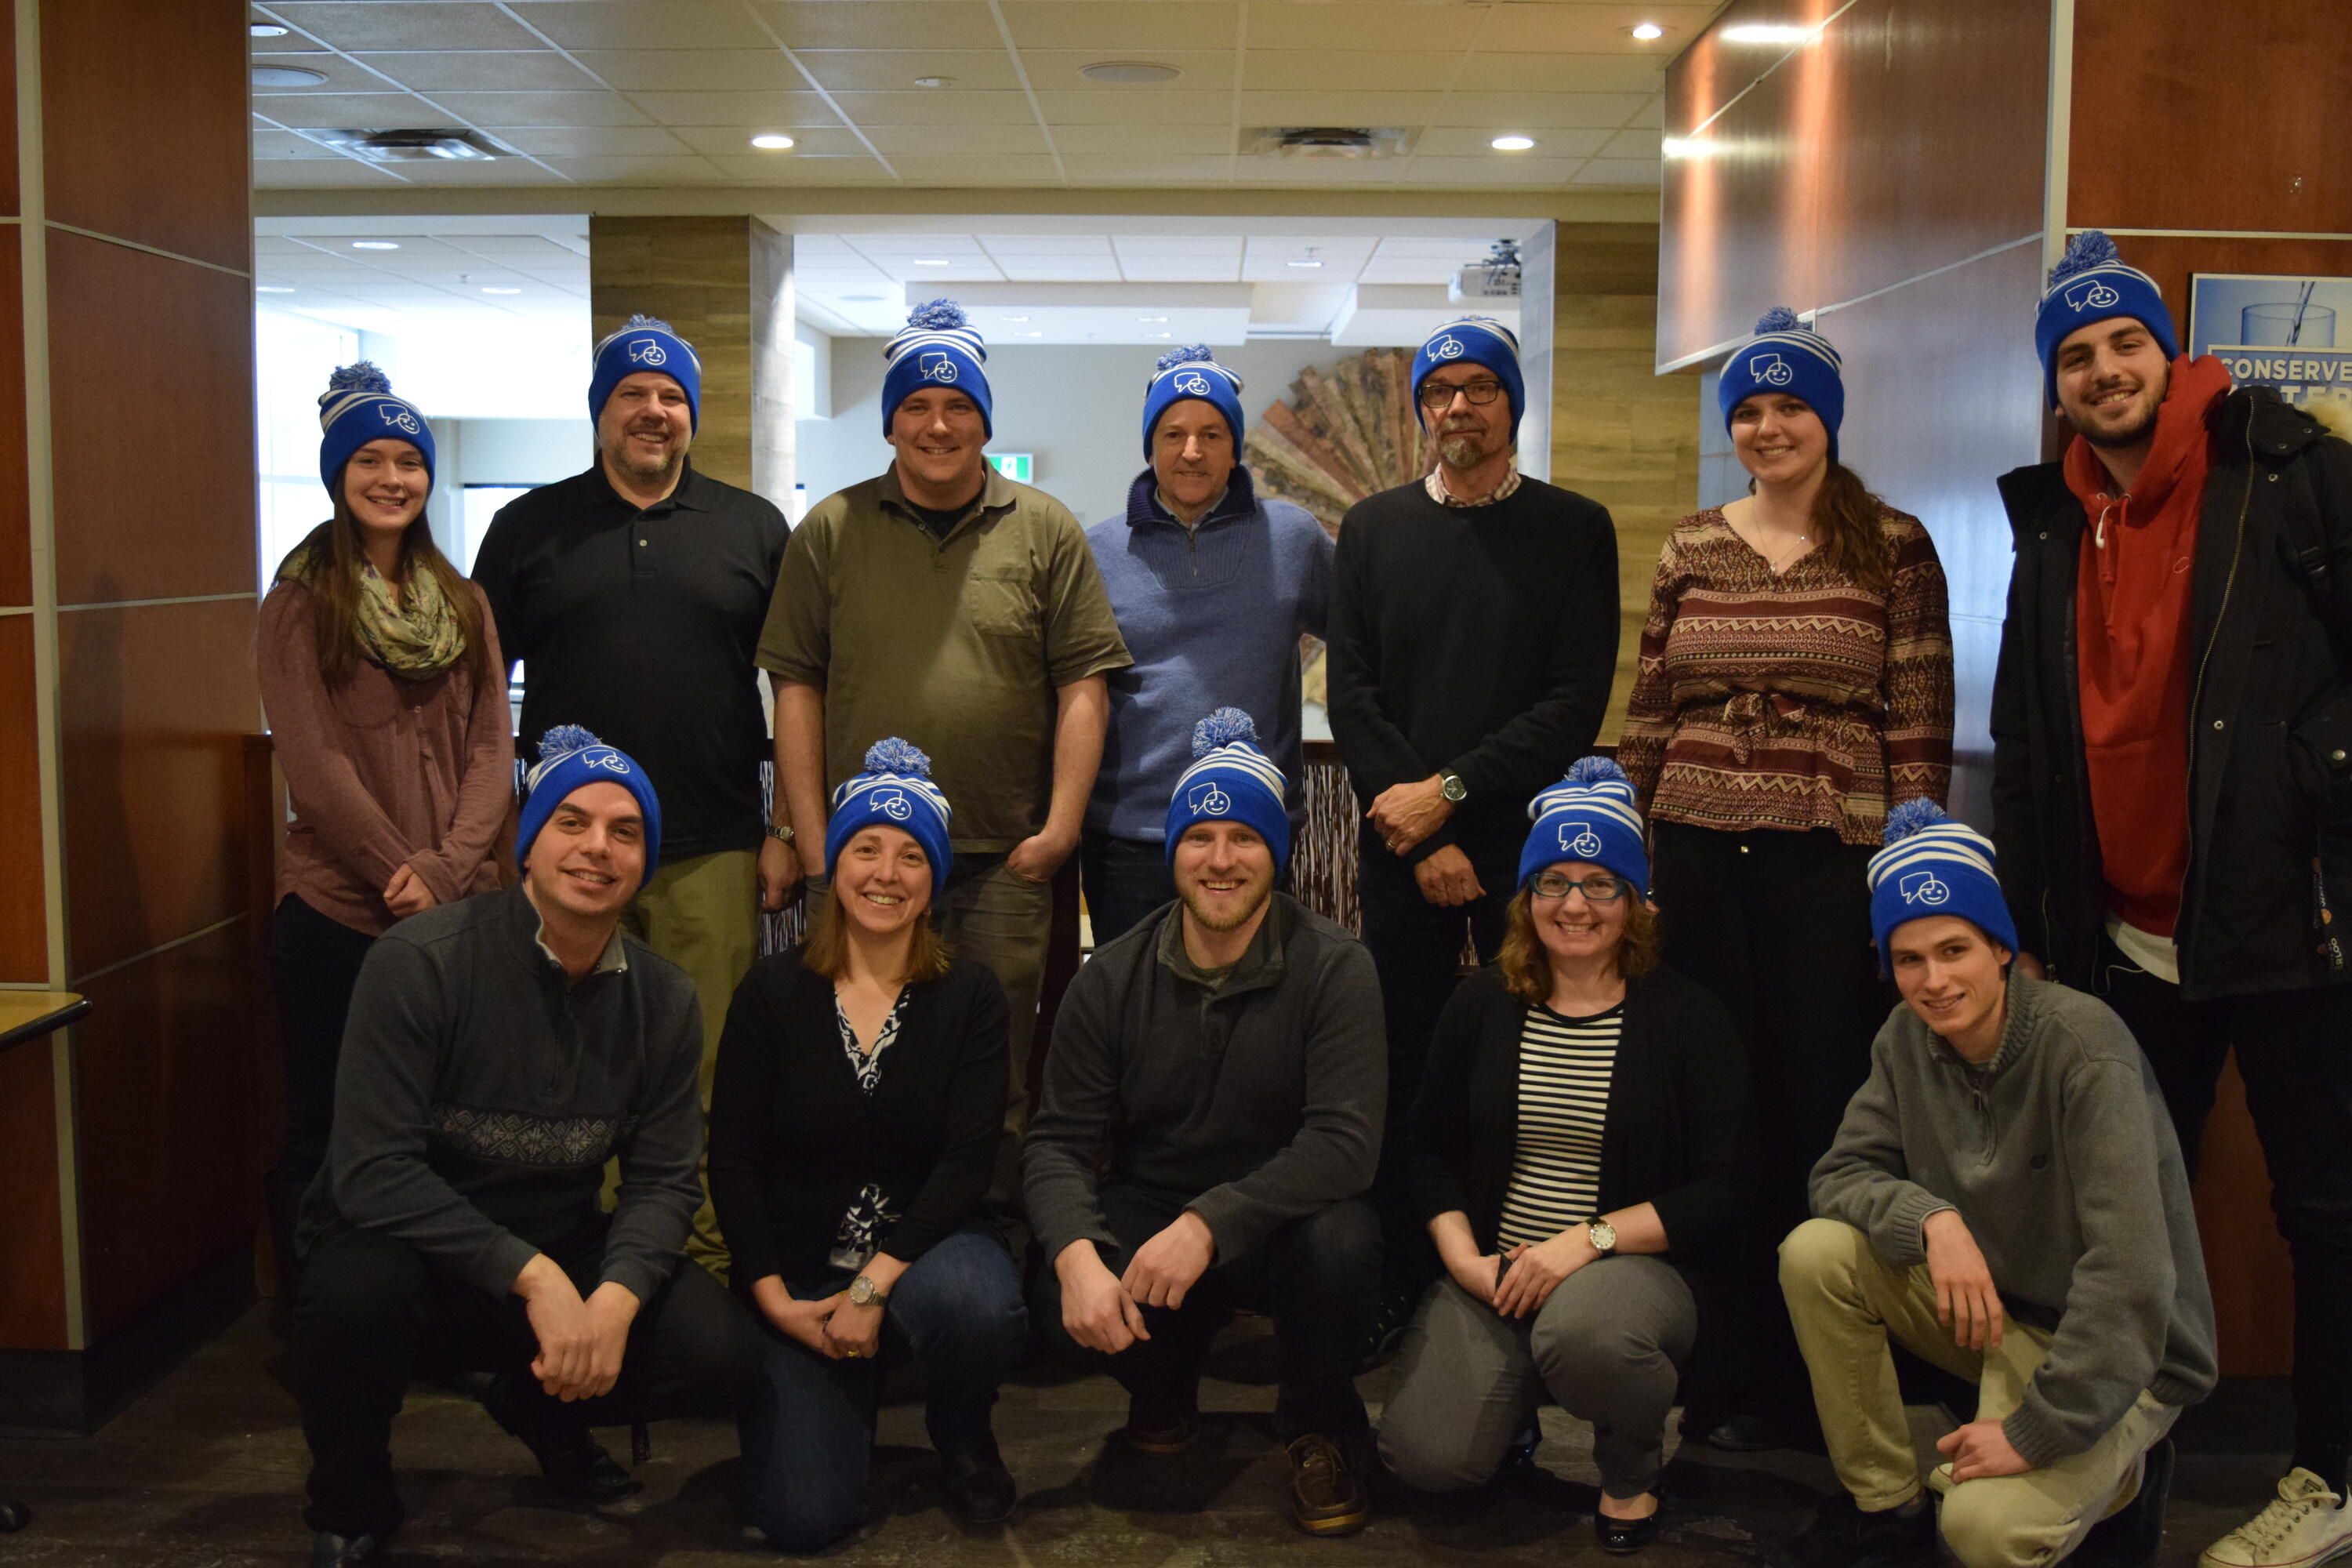 St. Paul's staff and faculty wearing hats for Bell Let's Talk Day